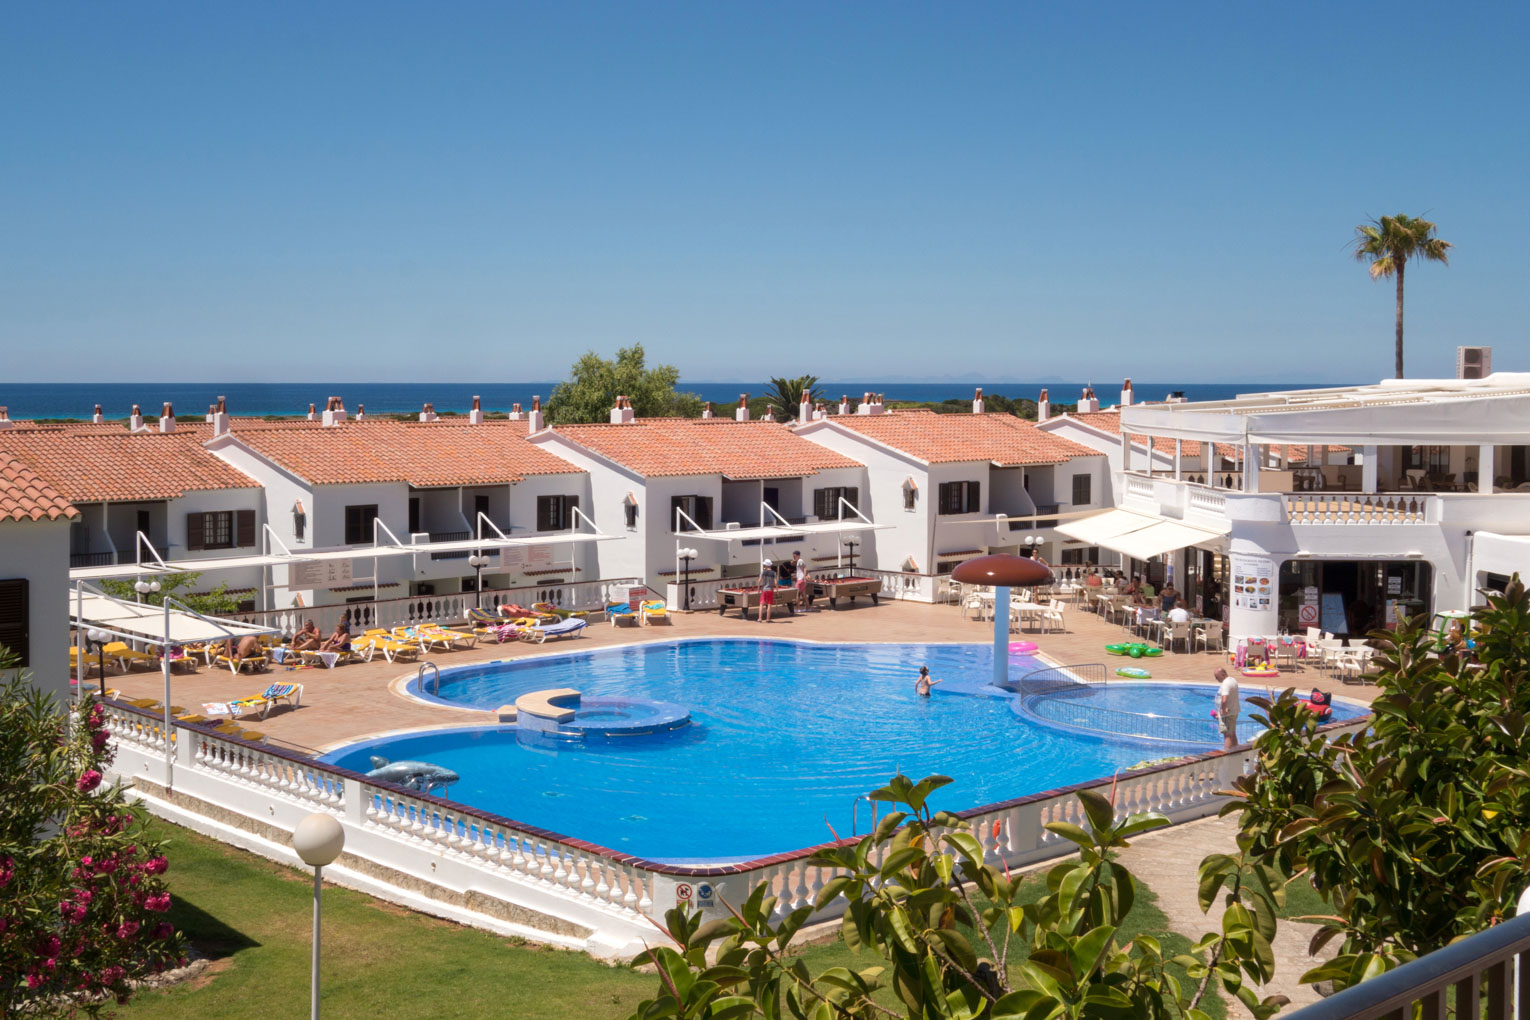 Son Bou Playa Apartments (2 bedroom) in Son Bou, Menorca